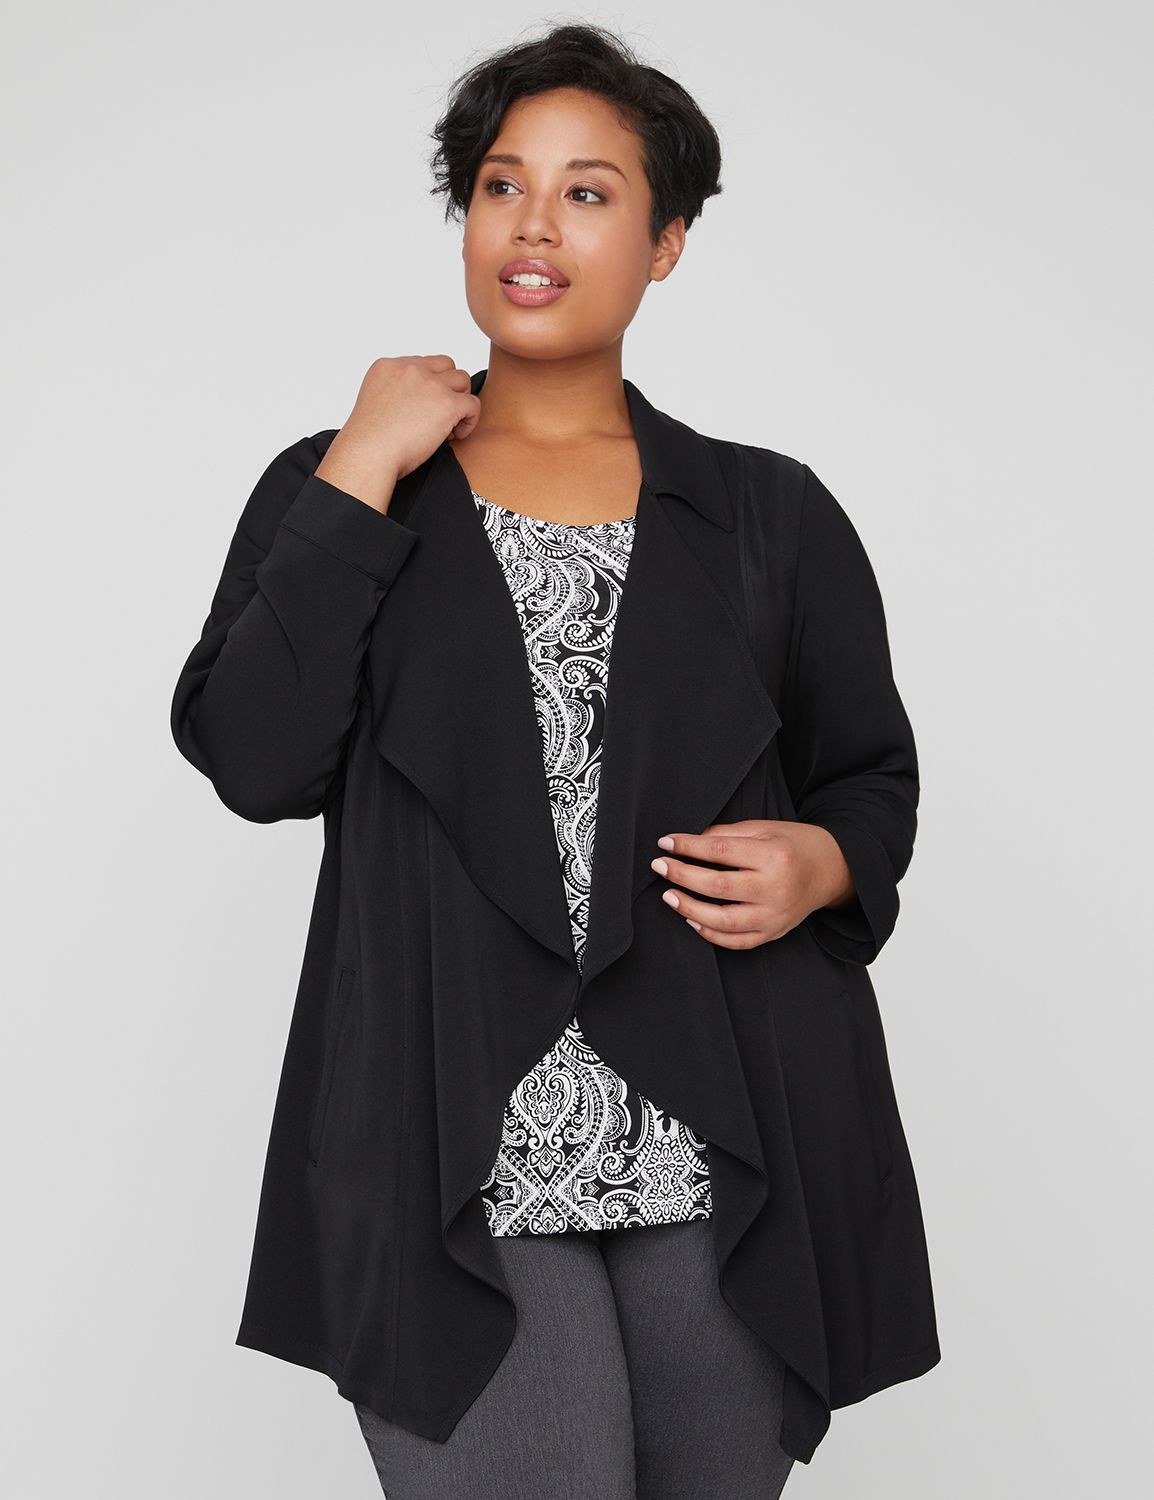 "A charming overpiece that brings flattering movement thanks to the cascading folds along the open-front design. Elastic gathering at back waist to compliment your silhouette. Long sleeves. Side pockets. Split side hem. Item Number #315374, 93% Polyester/7% Spandex, Machine Wash, Imported Plus Size Top, Length: 34"" , Plus Sizes 0X-5X, Petite Plus Sizes 0XWP-3XWP, Catherines Plus Sizes"